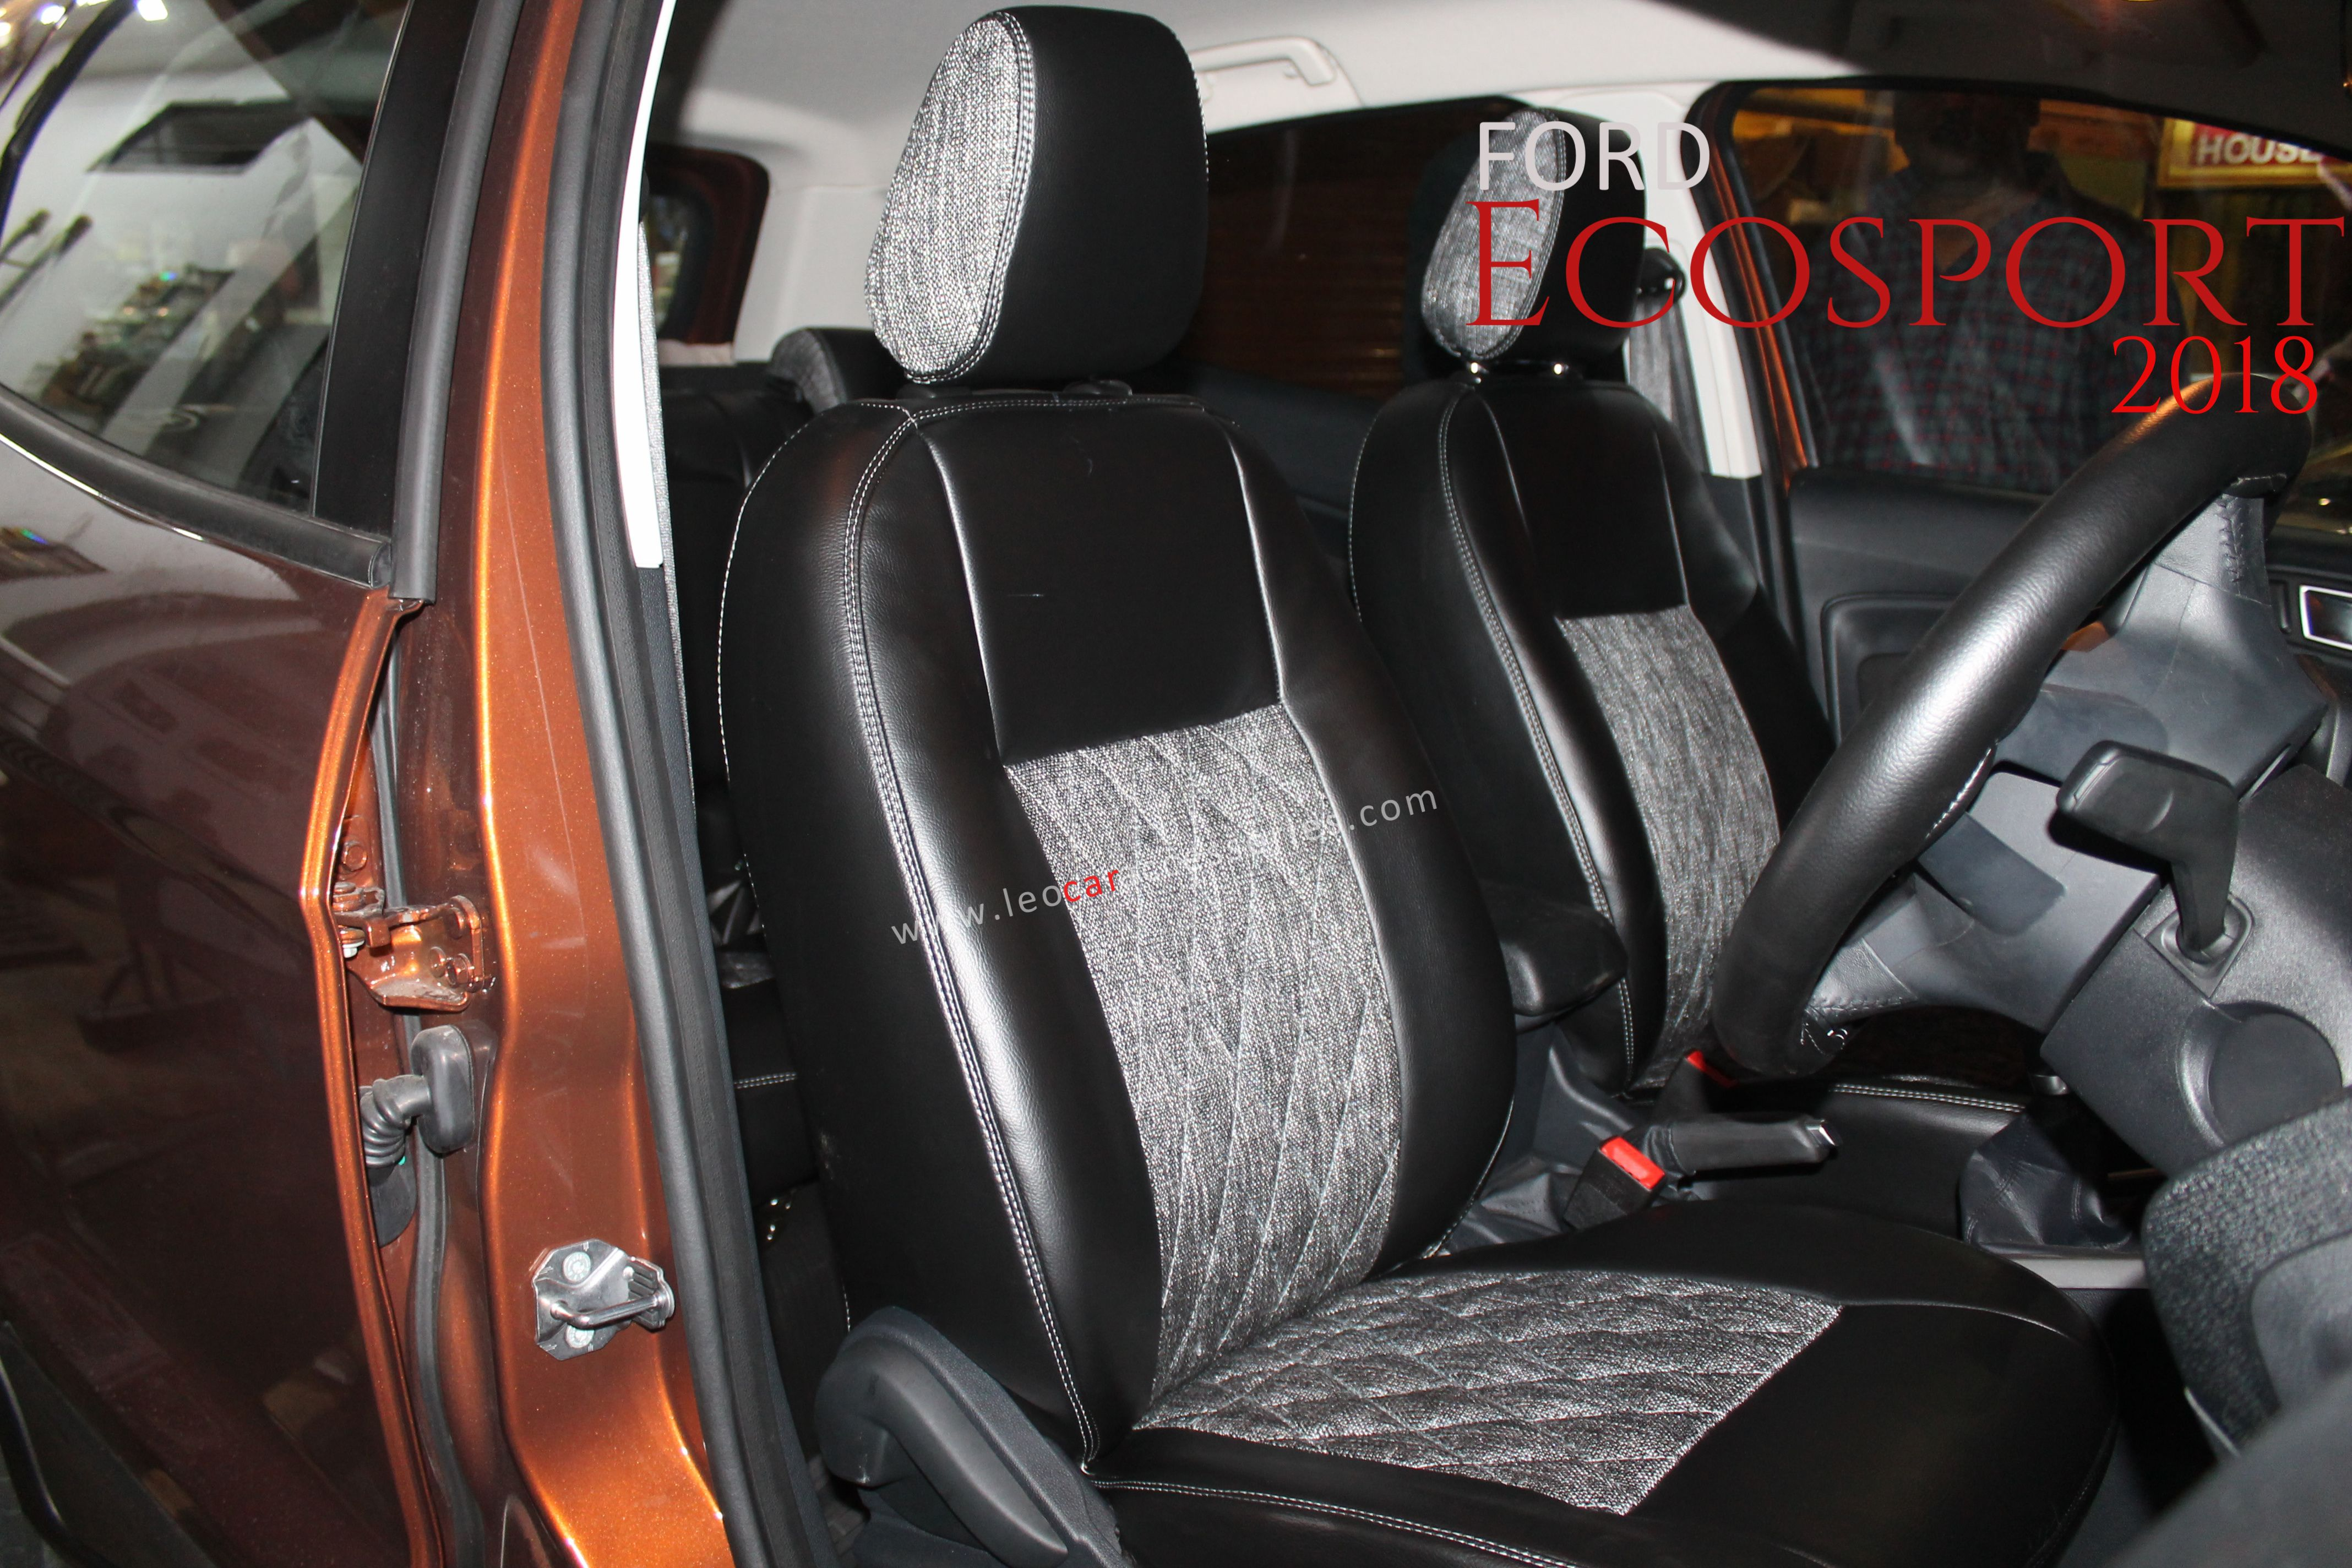 Ford Ecosport Customized Car Seat Cover From Feather Installed By